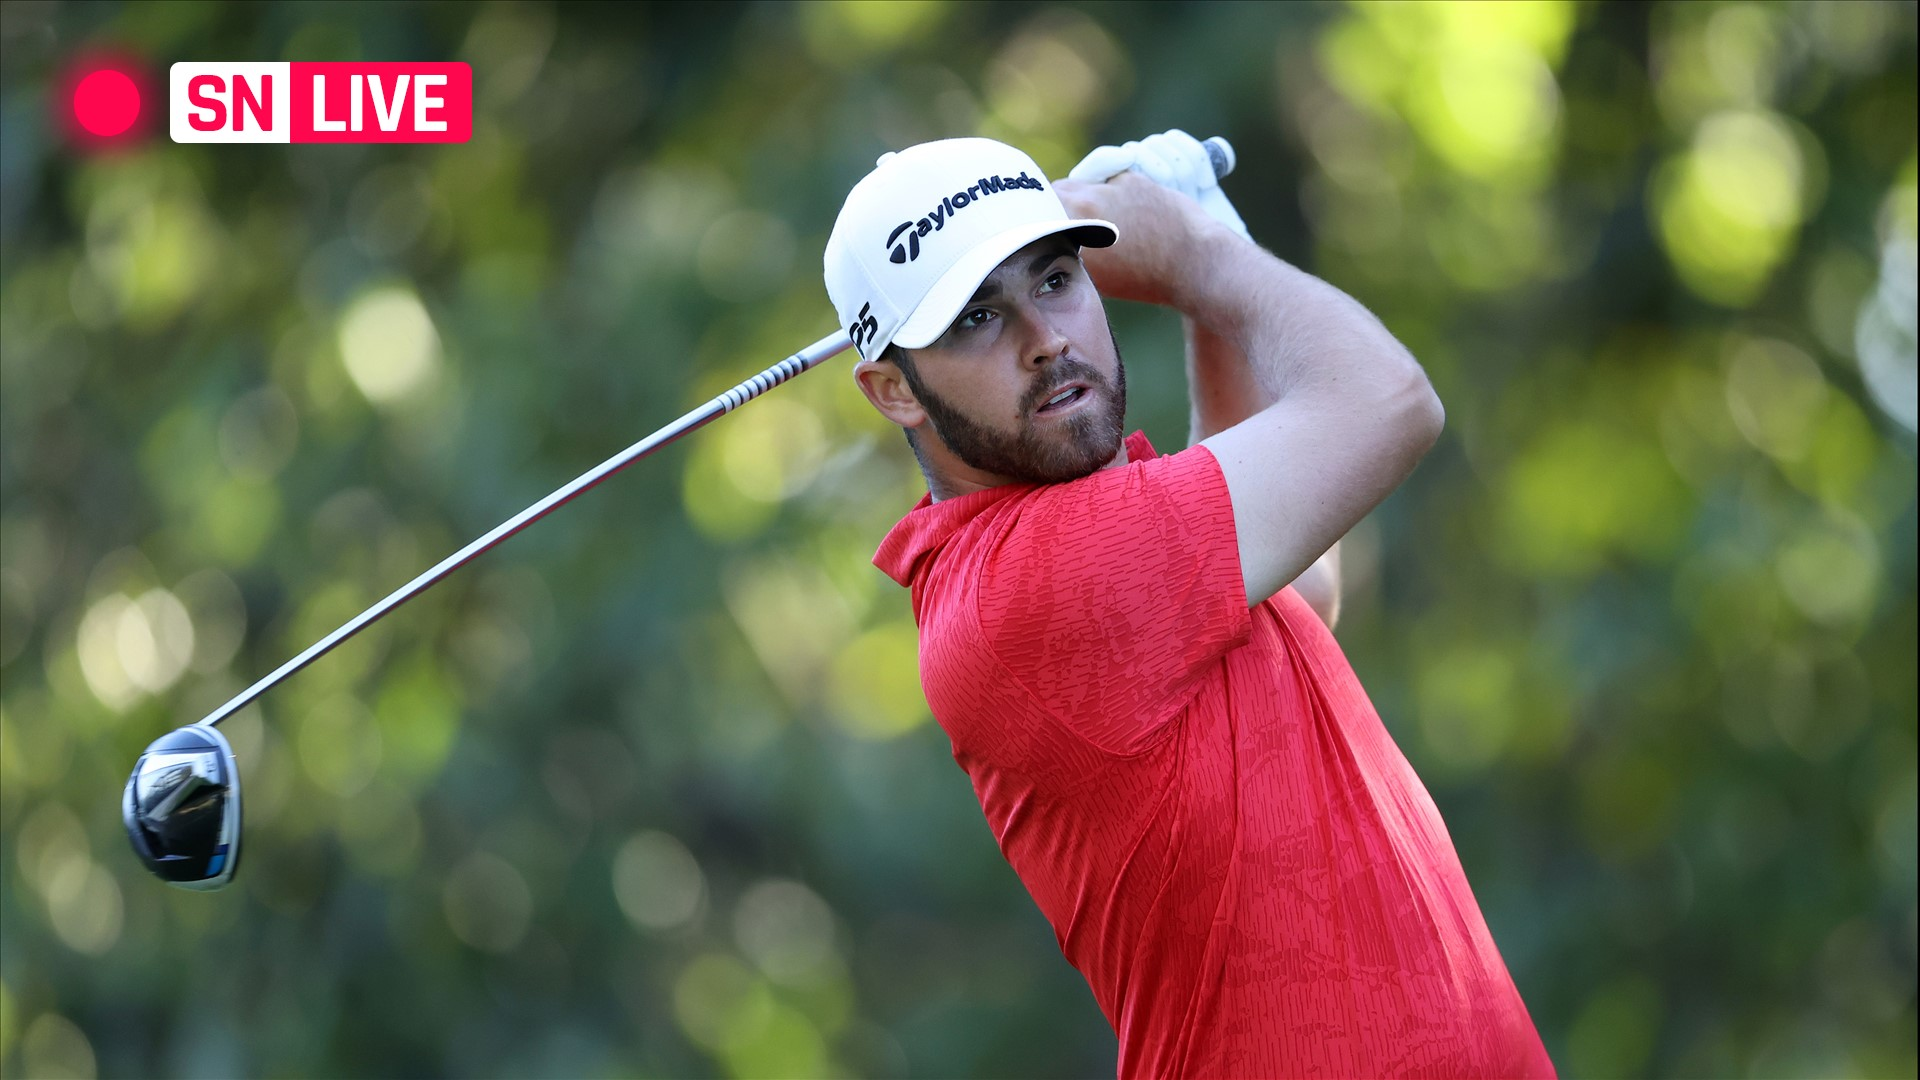 US Open live golf scores, results, highlights from Sunday